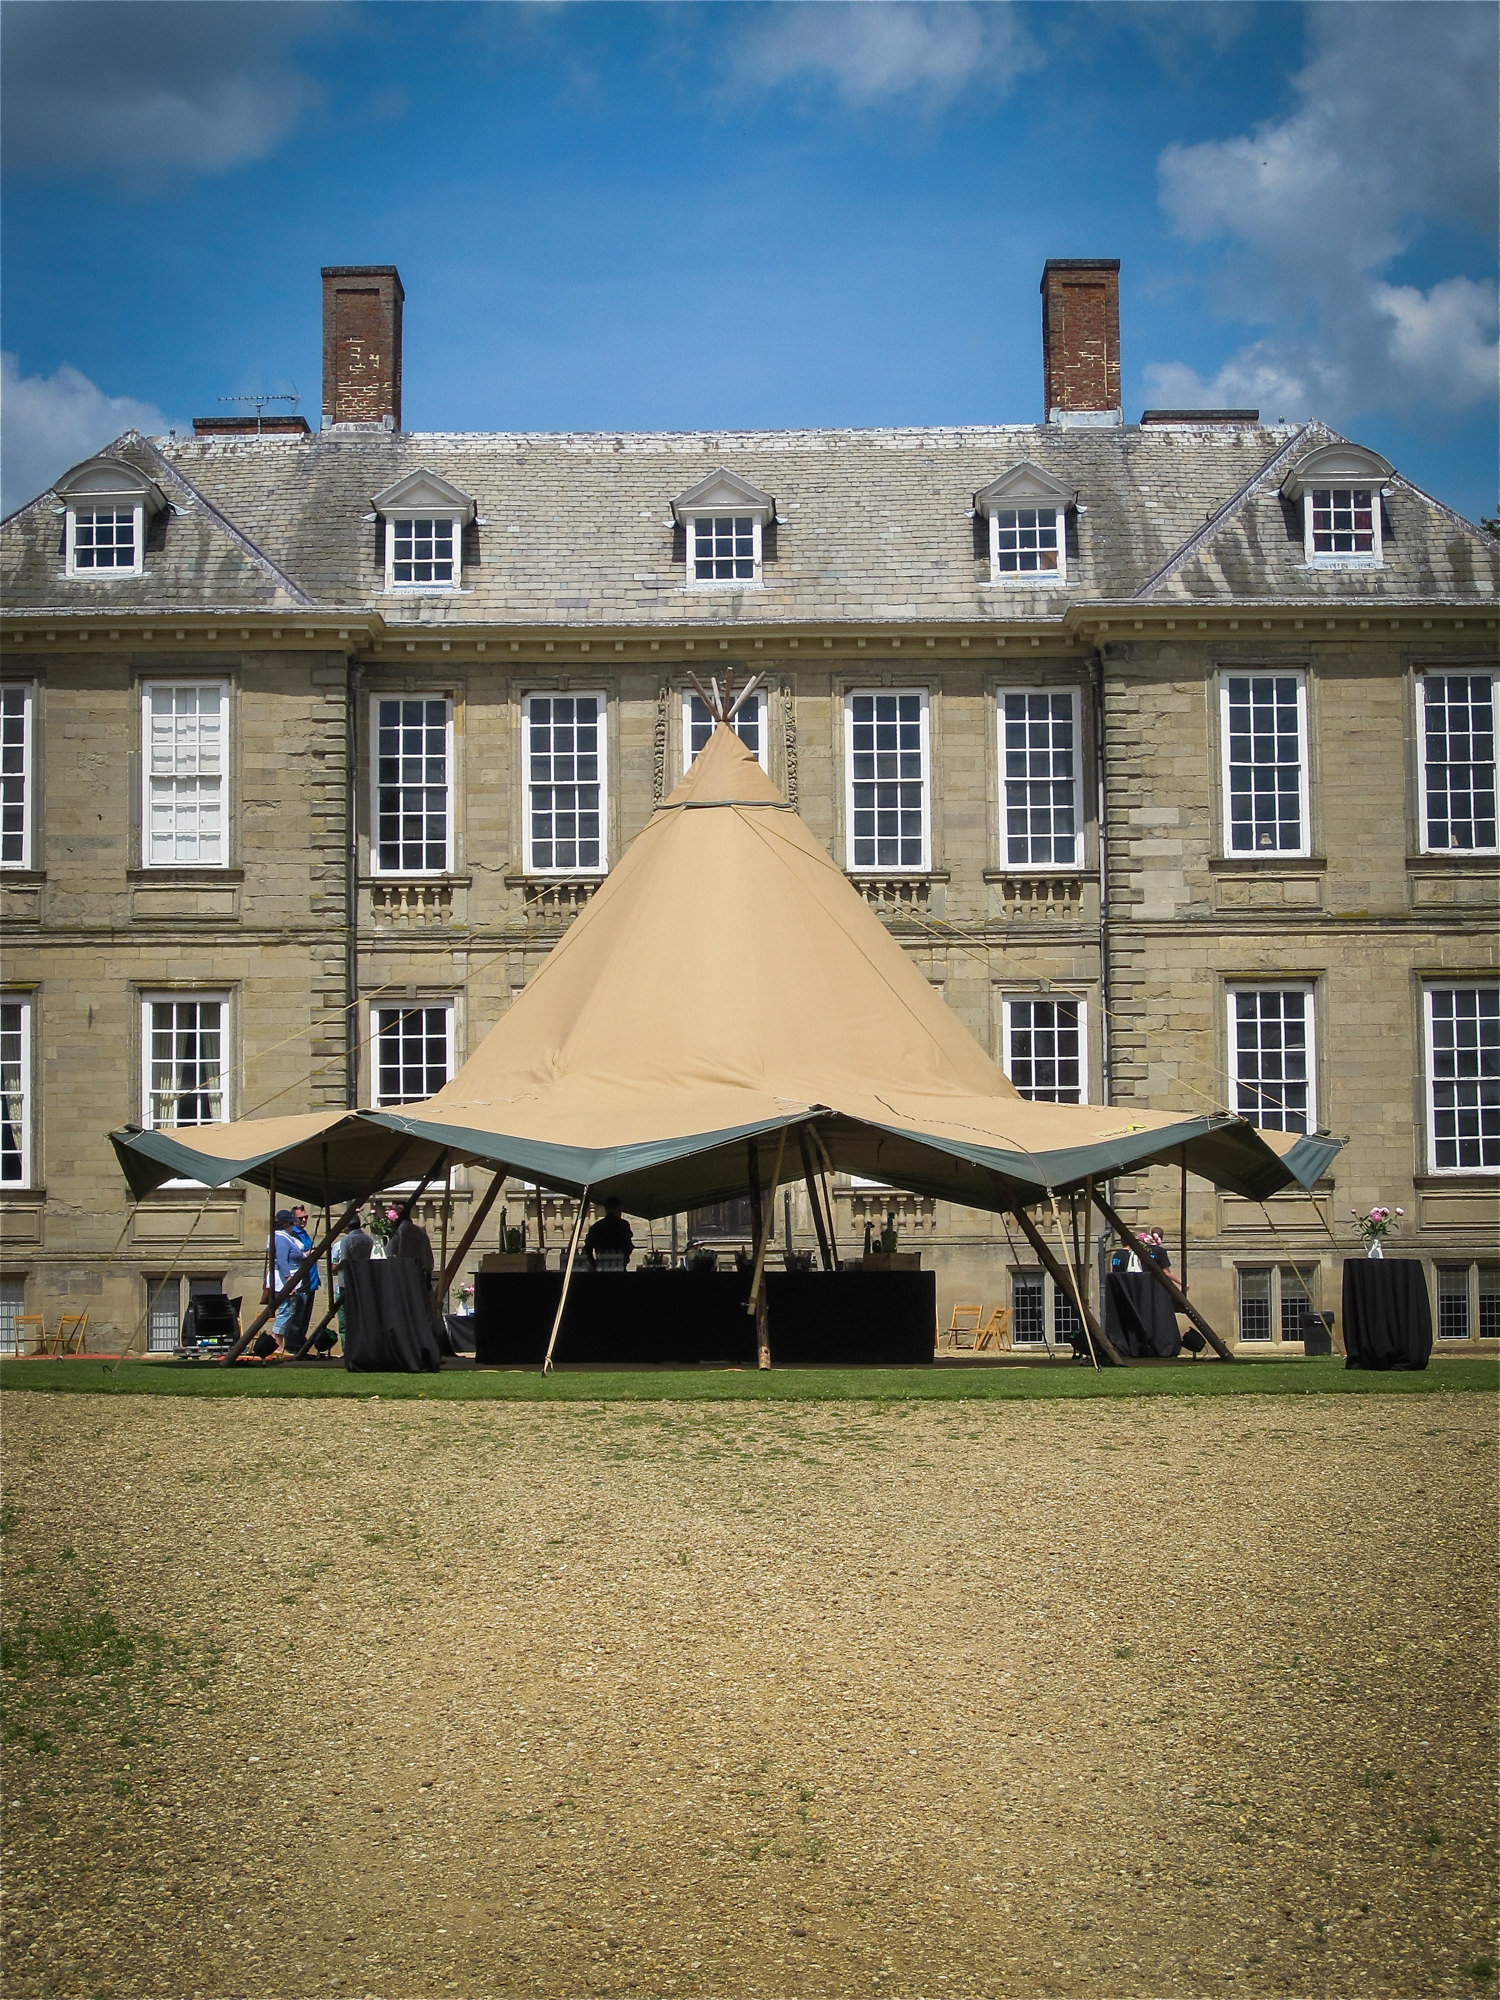 Tipi outside a stately home